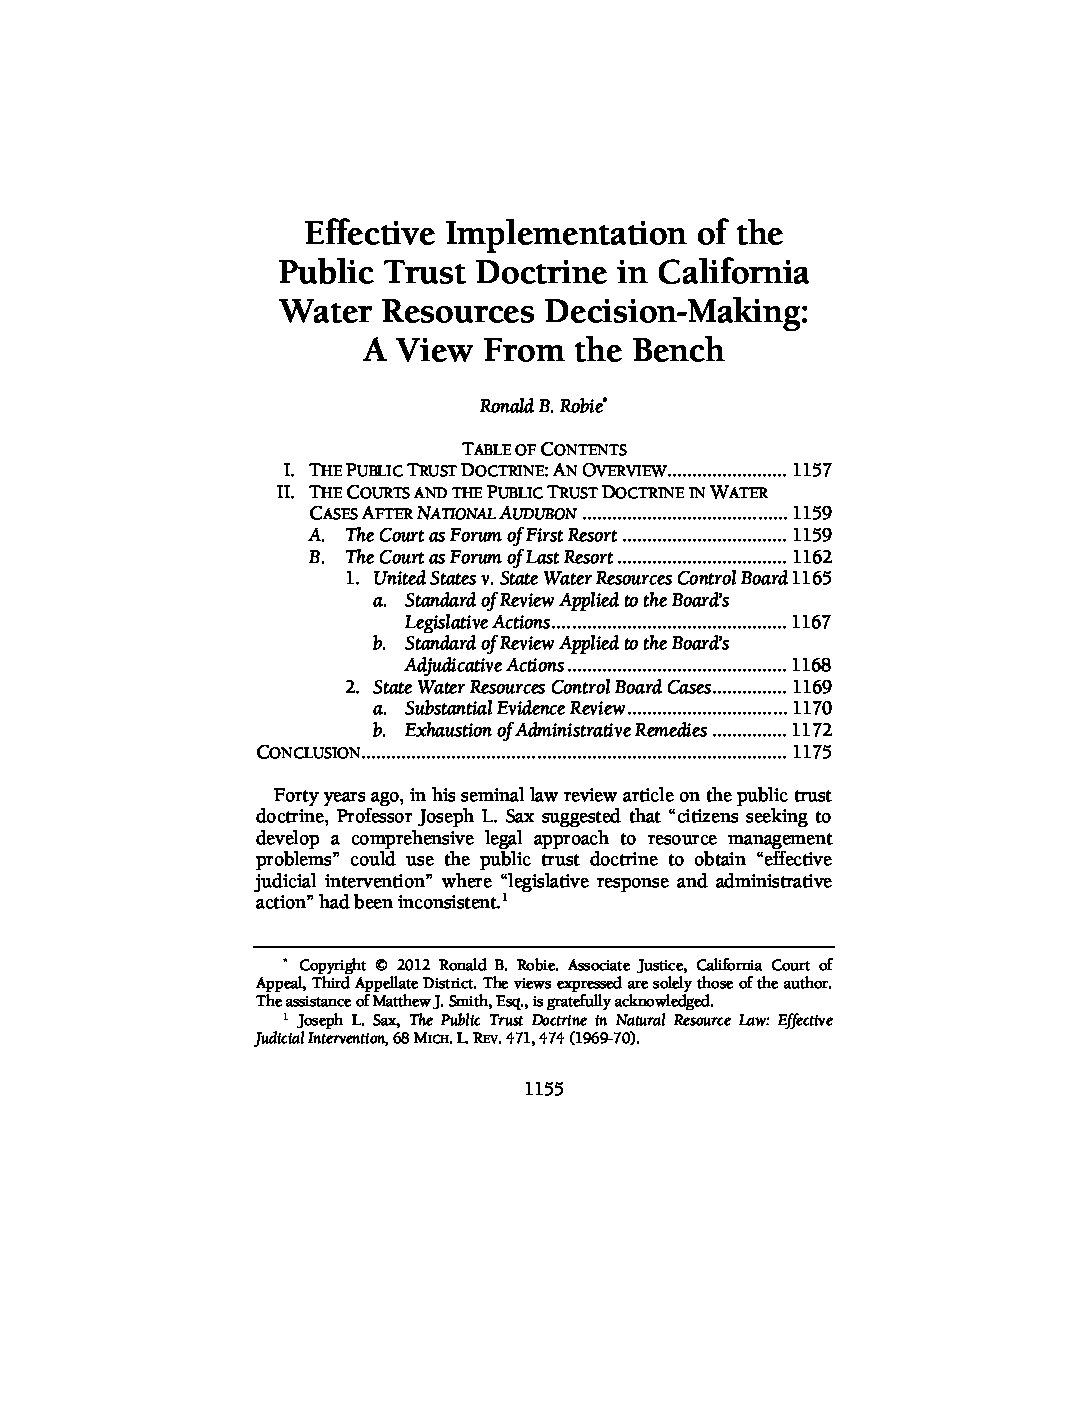 Effective Implementation of the Public Trust Doctrine in California Water Resources Decision-Making: A View From the Bench